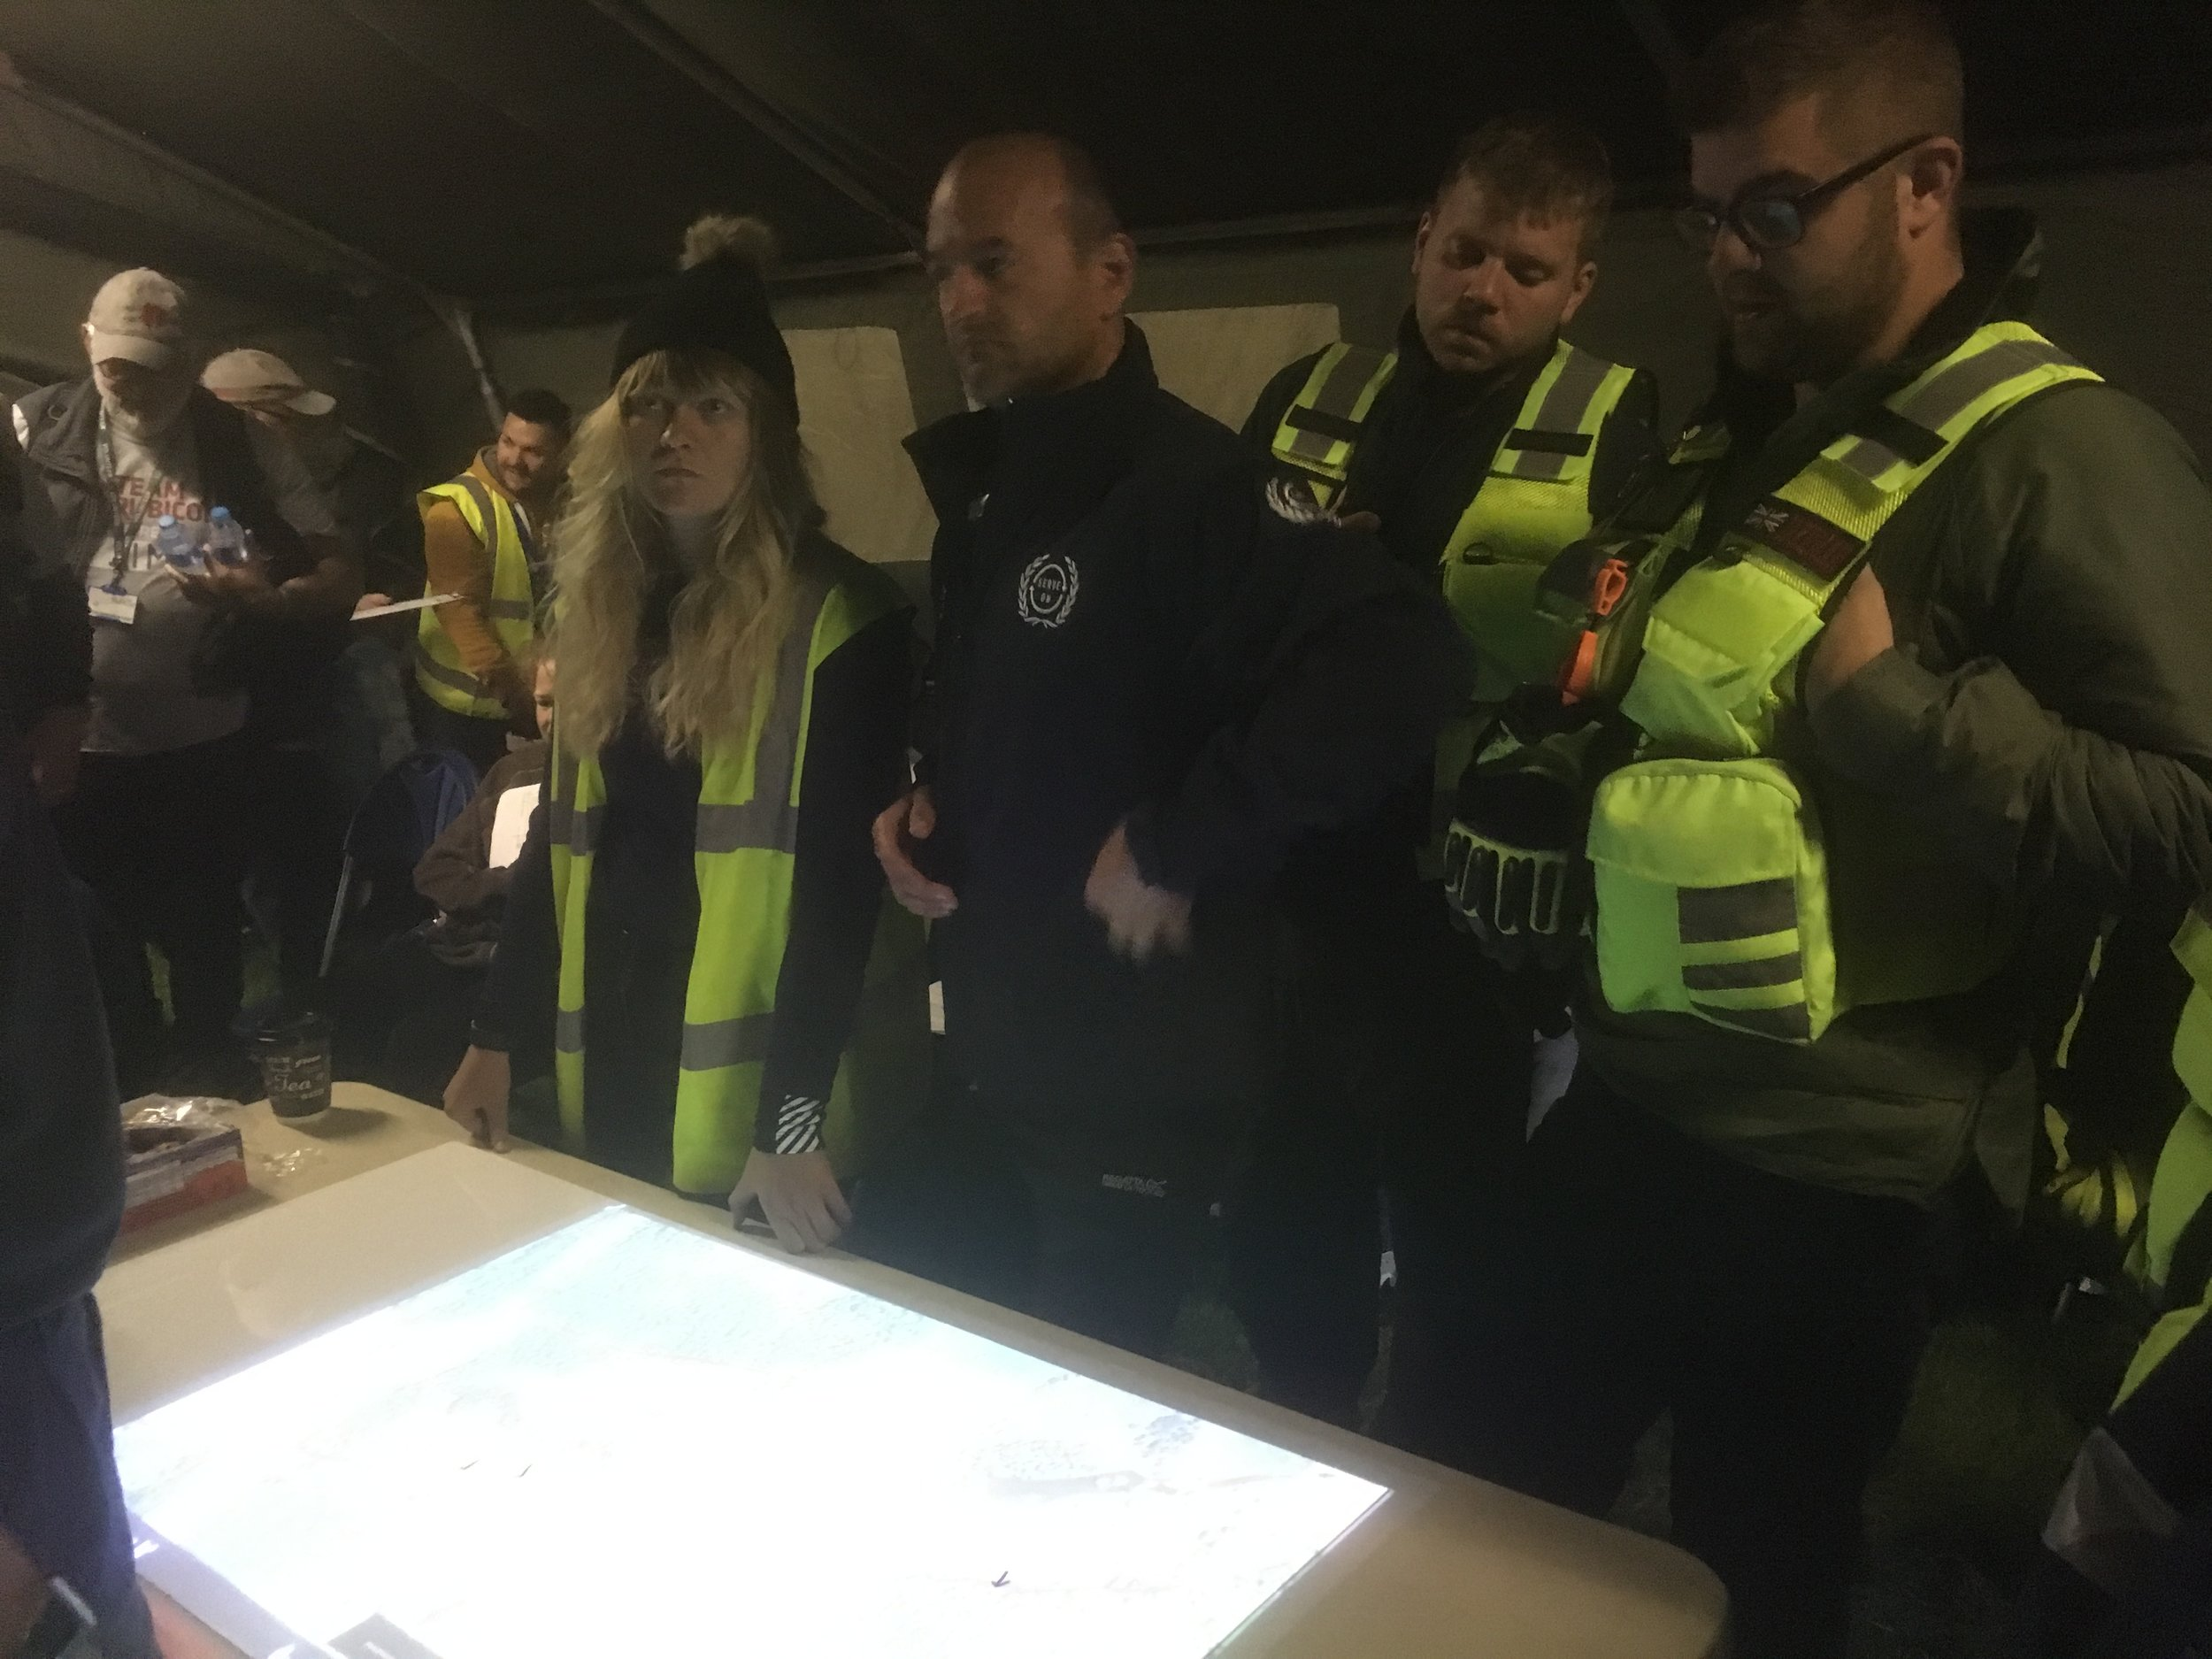 @SERVE_ON Volunteeers from the @serveonirt International Response Team, the @SalisburyCRT Community Resilience Team, @RescueRookies and @SOK9SAR join with other volunteers in the Operations Room before marshalling the @Glowintheparkuk event @Longleat in aid of @AlabareUK.